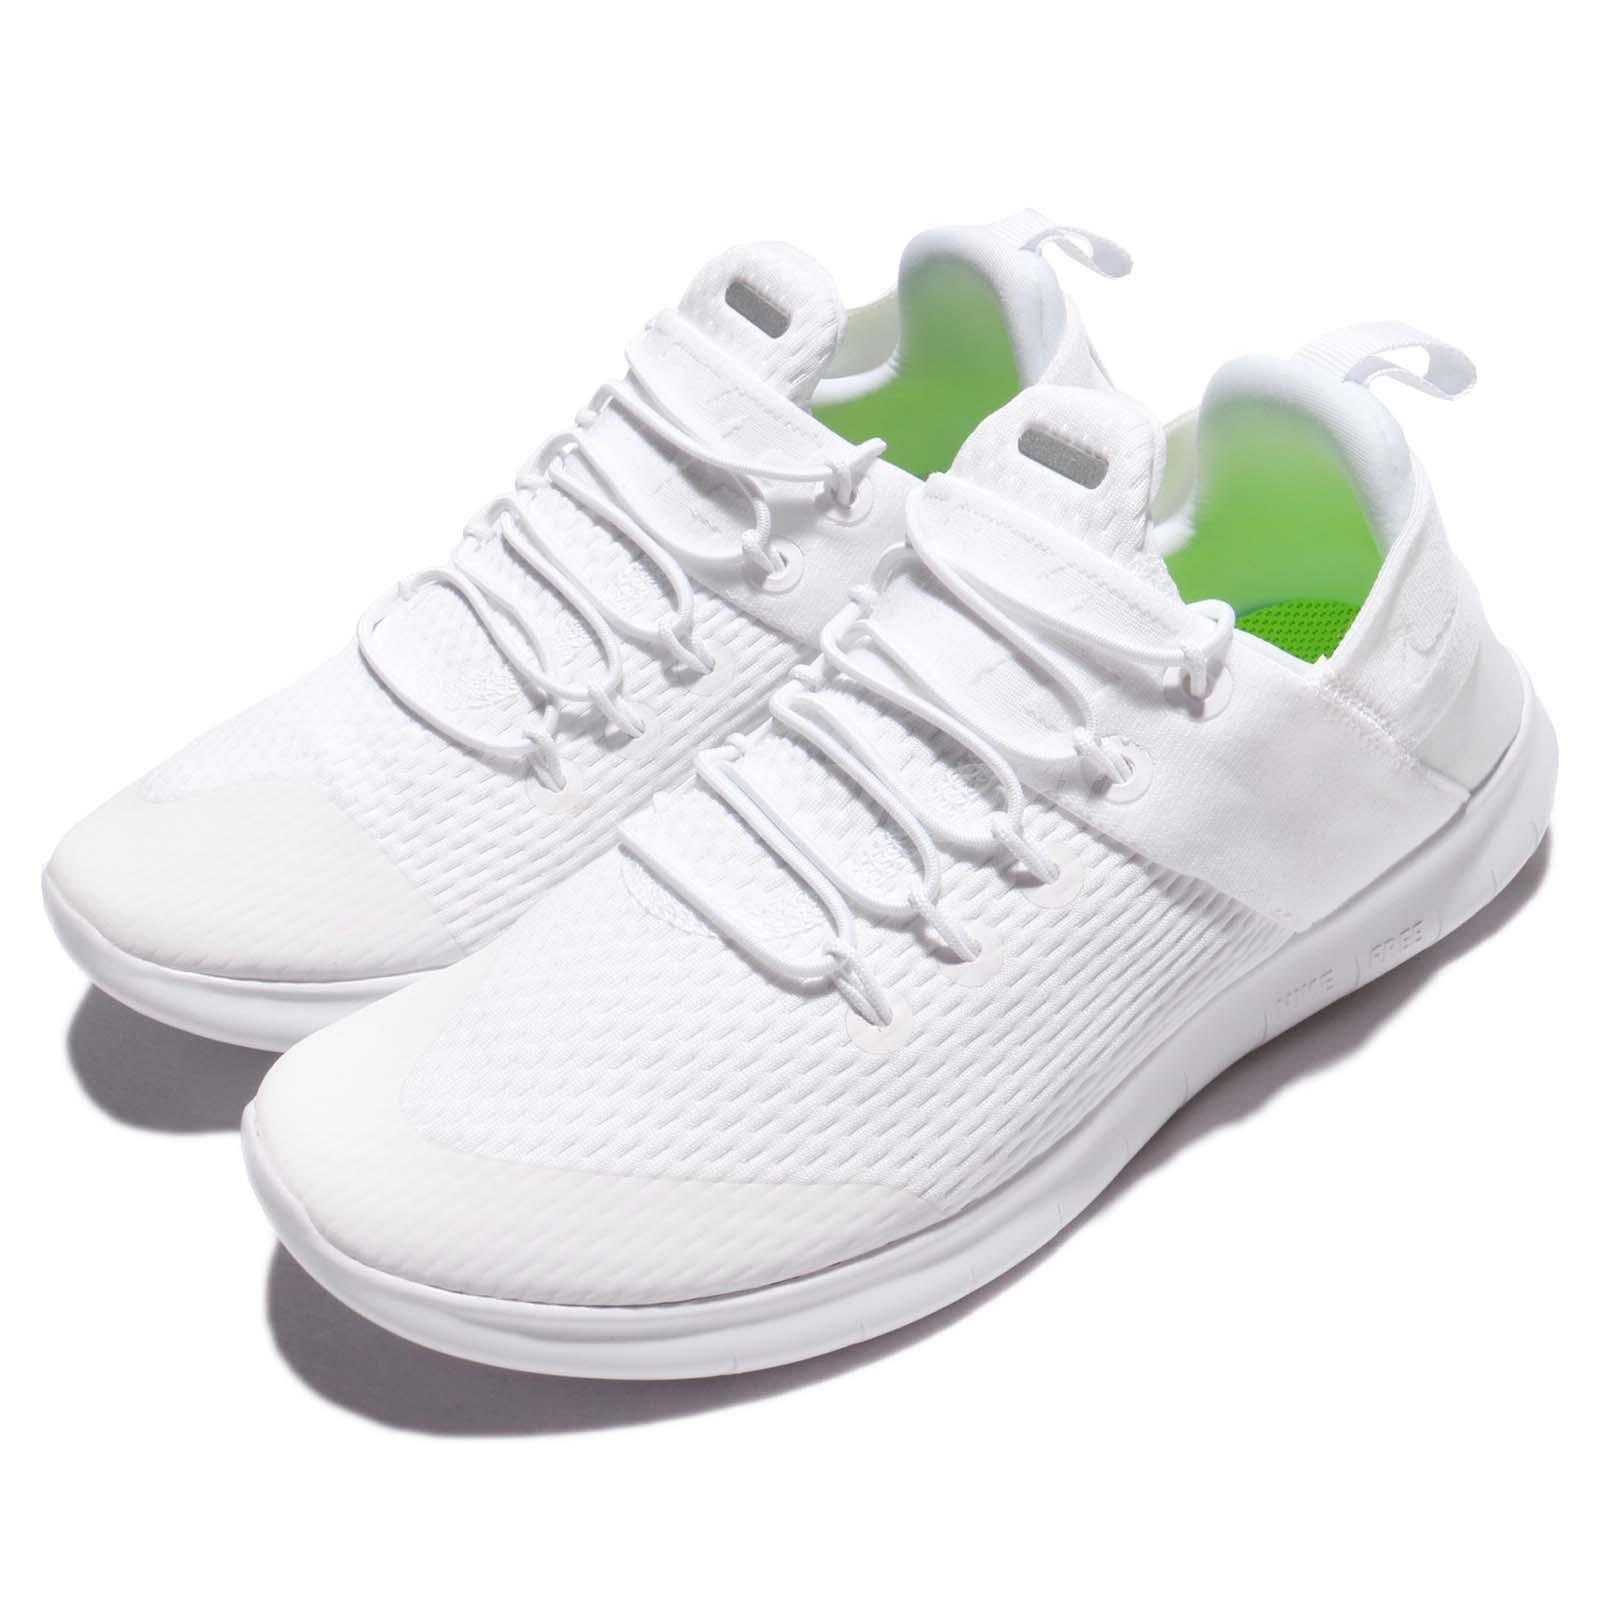 online retailer c5222 d8eec Details about Wmns Nike Free RN CMTR 2017 Triple White Women Running Shoes  Sneakers 880842-100